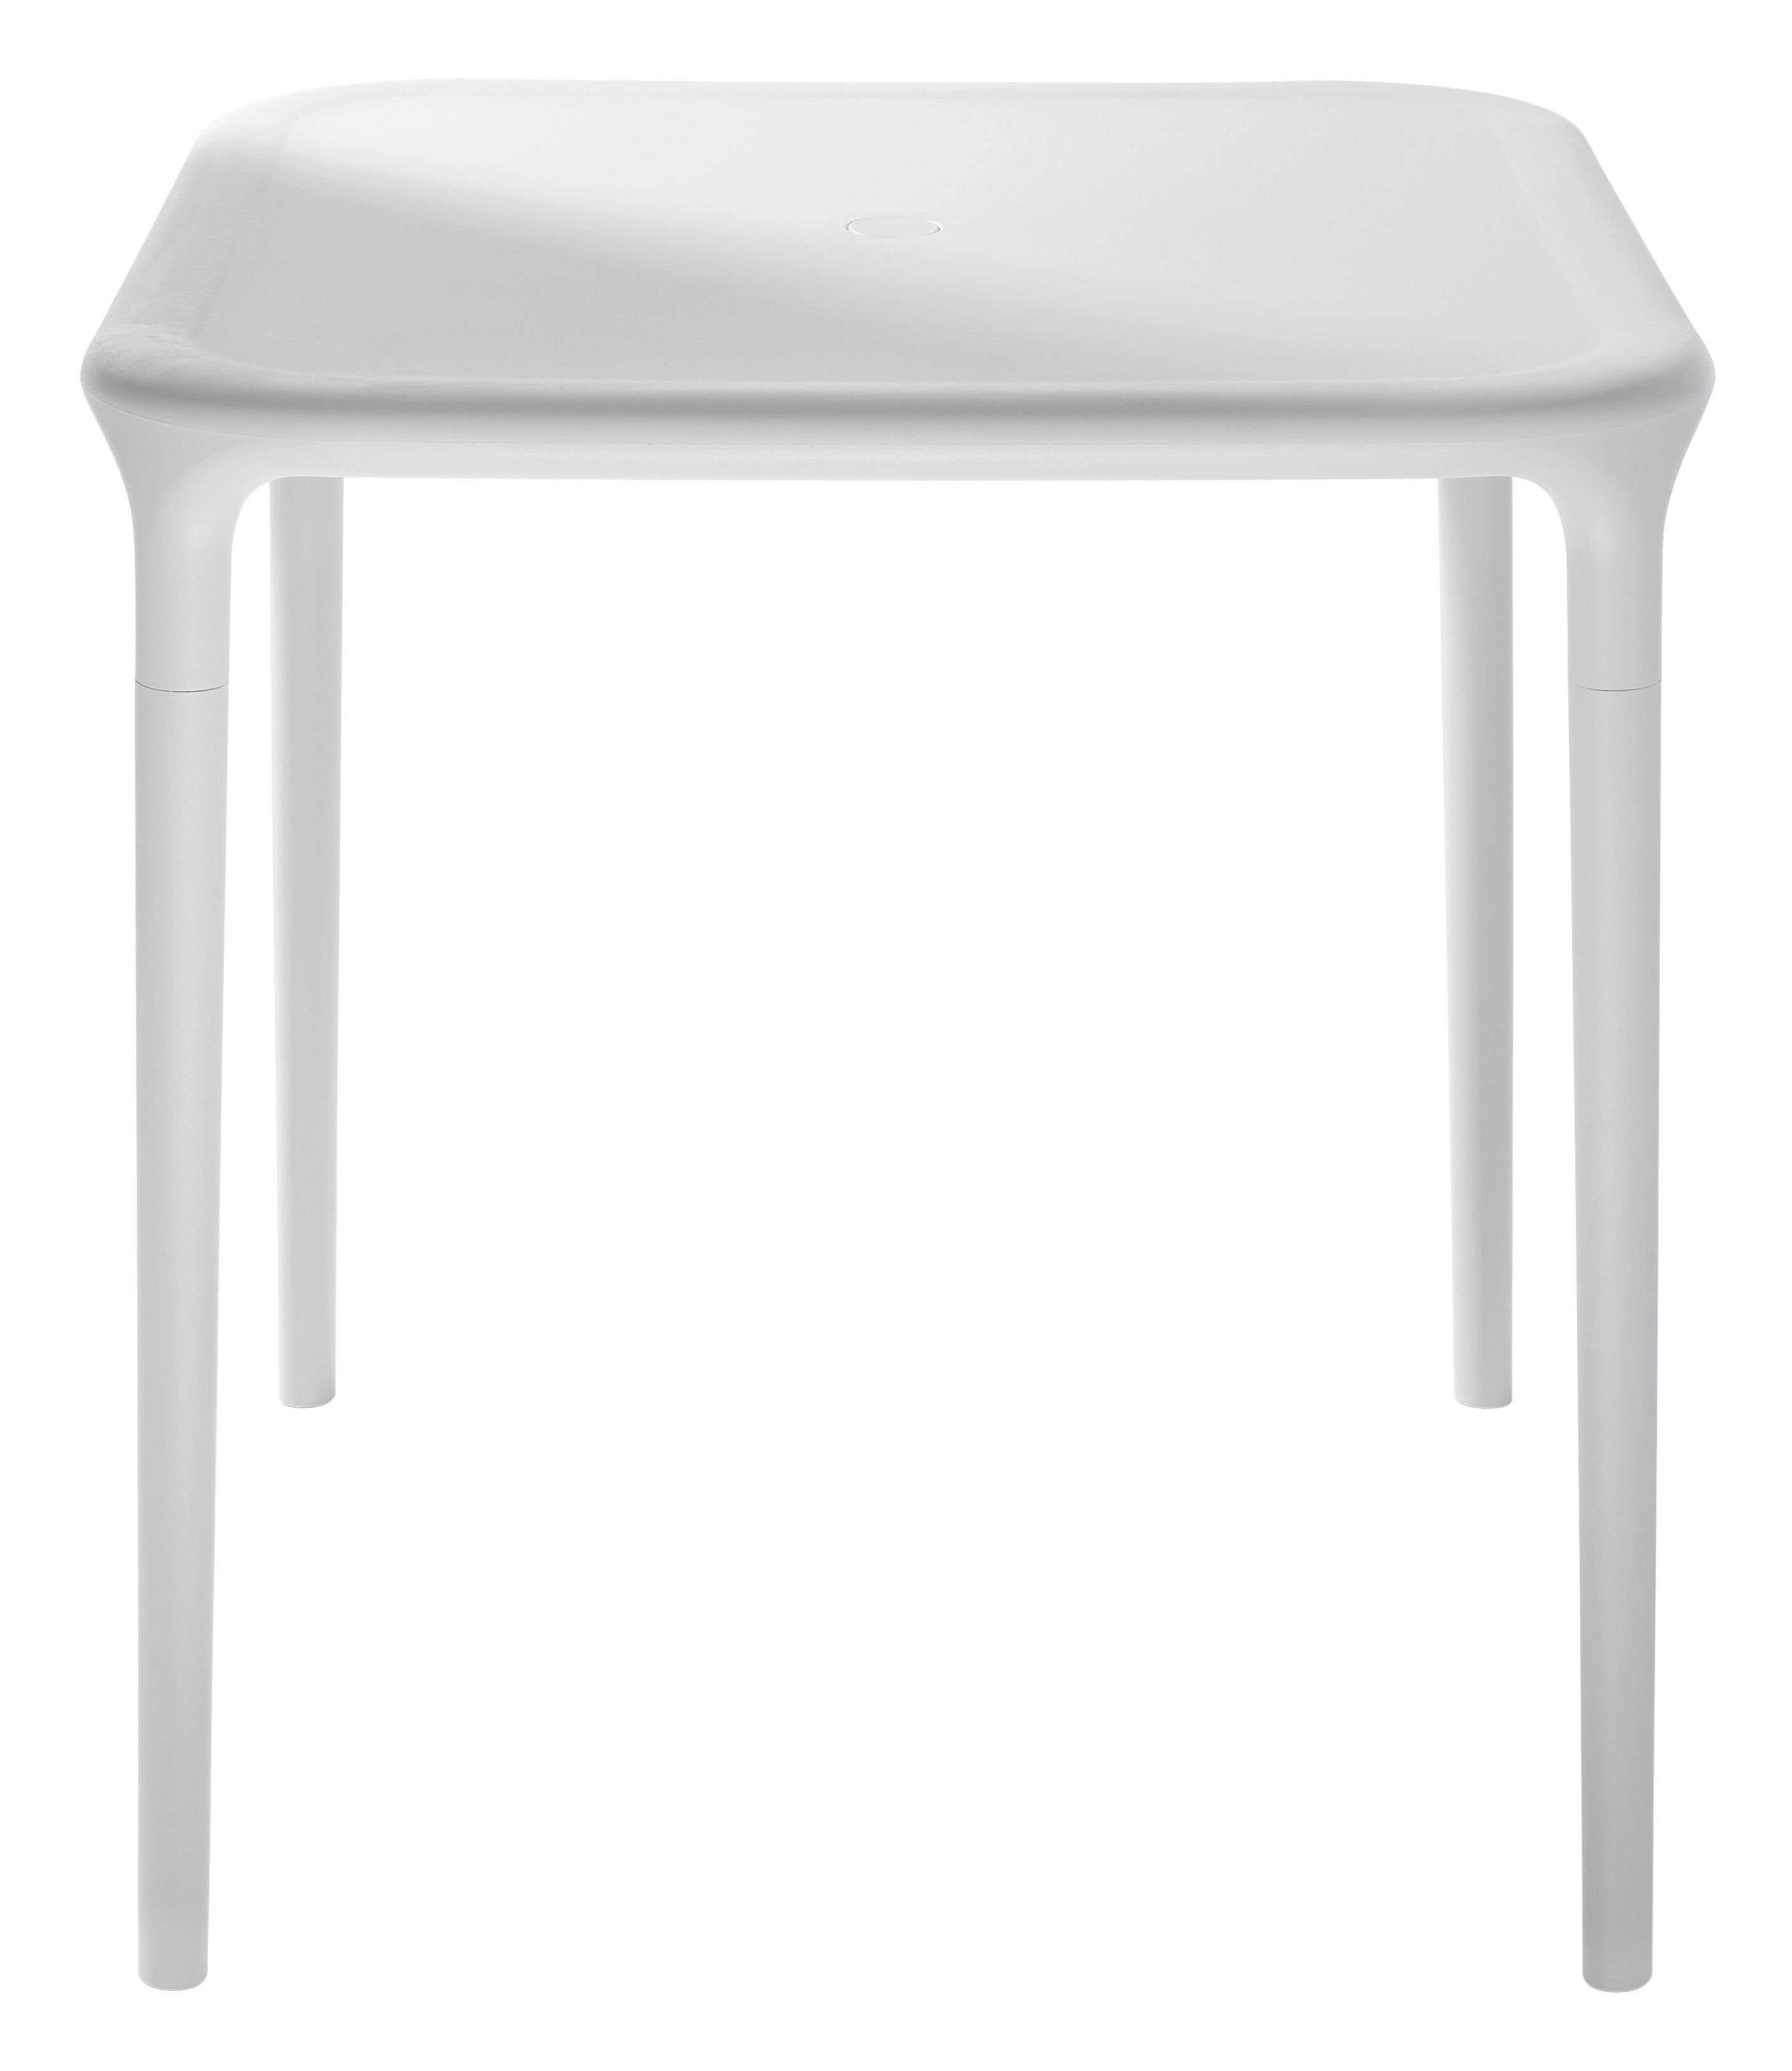 Jardin - Tables de jardin - Table carrée Air-Table / 65 x 65 cm - Magis - Blanc 65 x 65 cm - Polypropylène